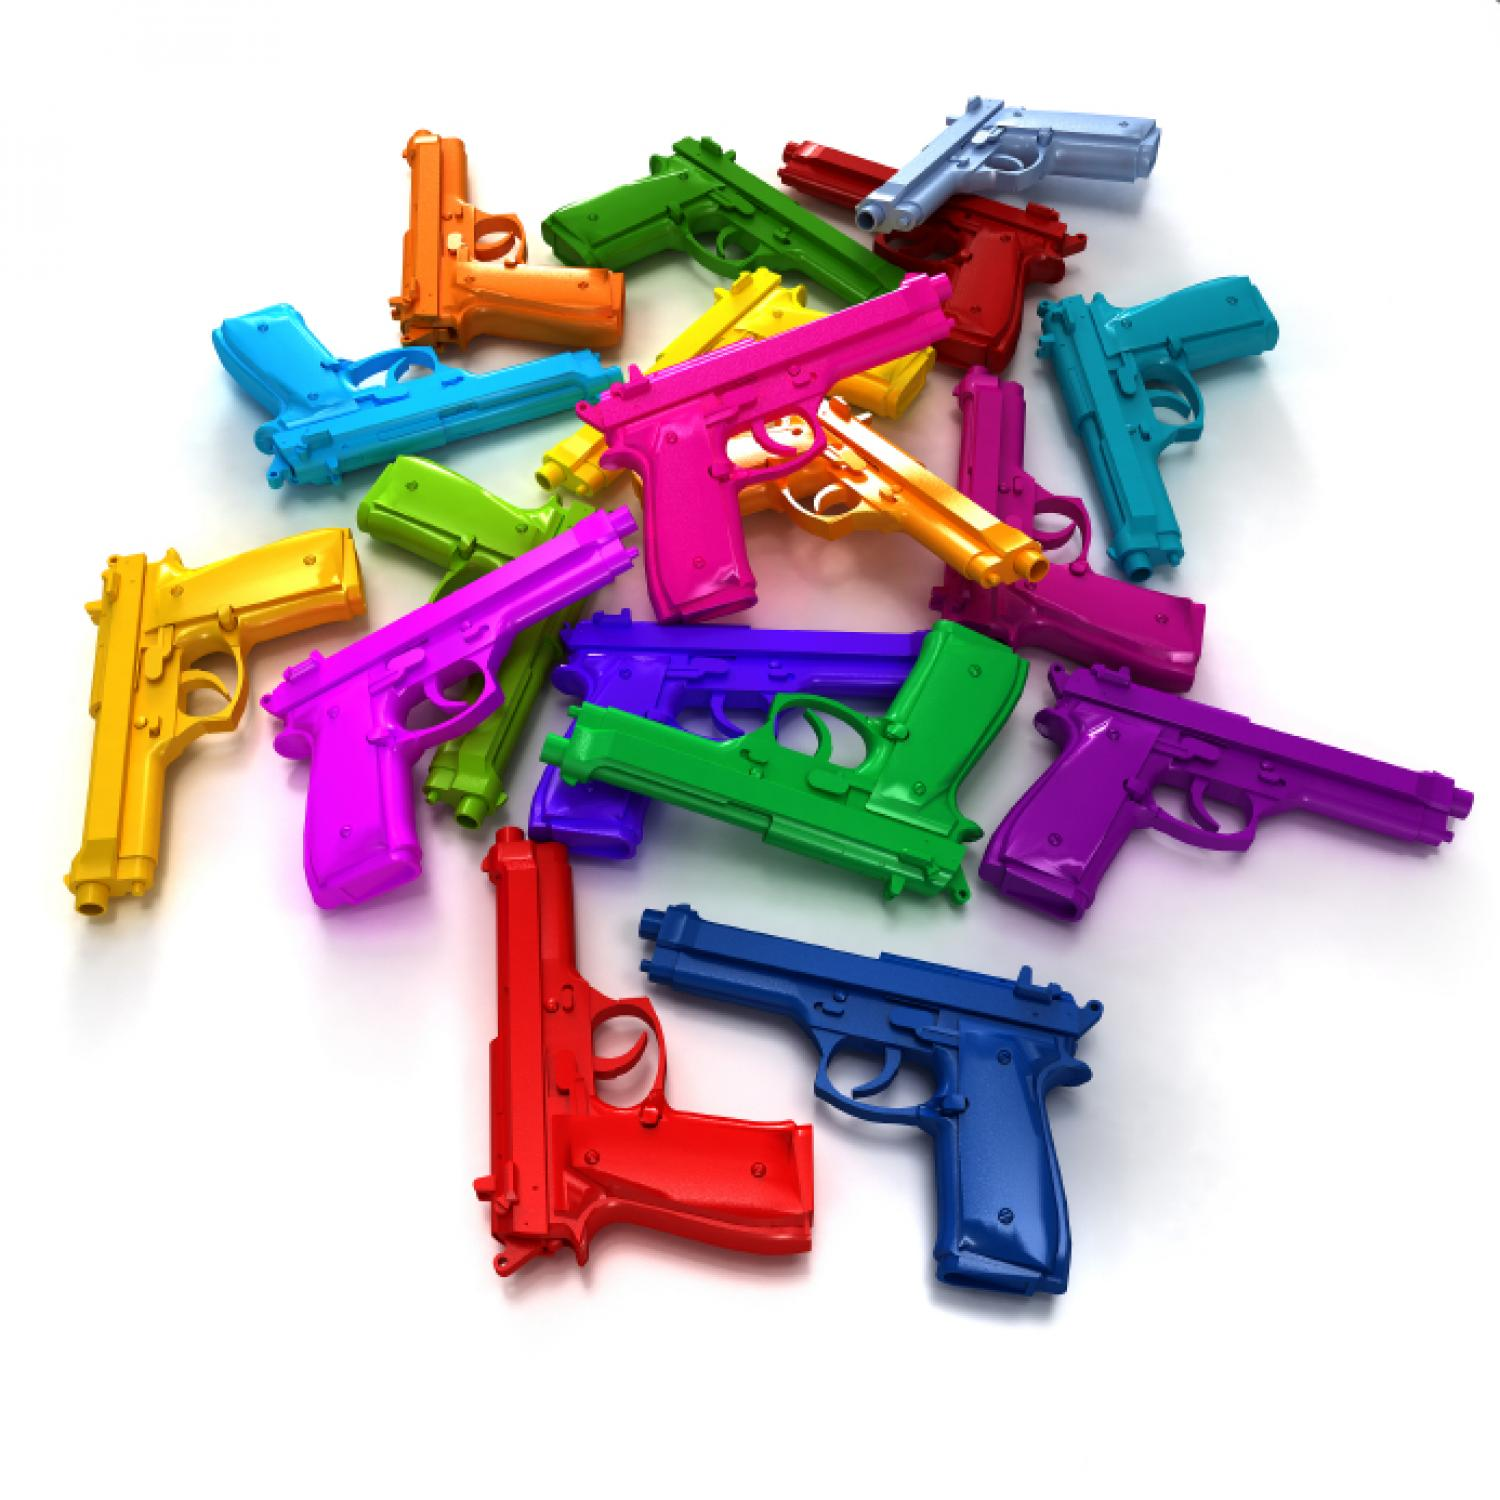 Are Parents Banning Toy Guns